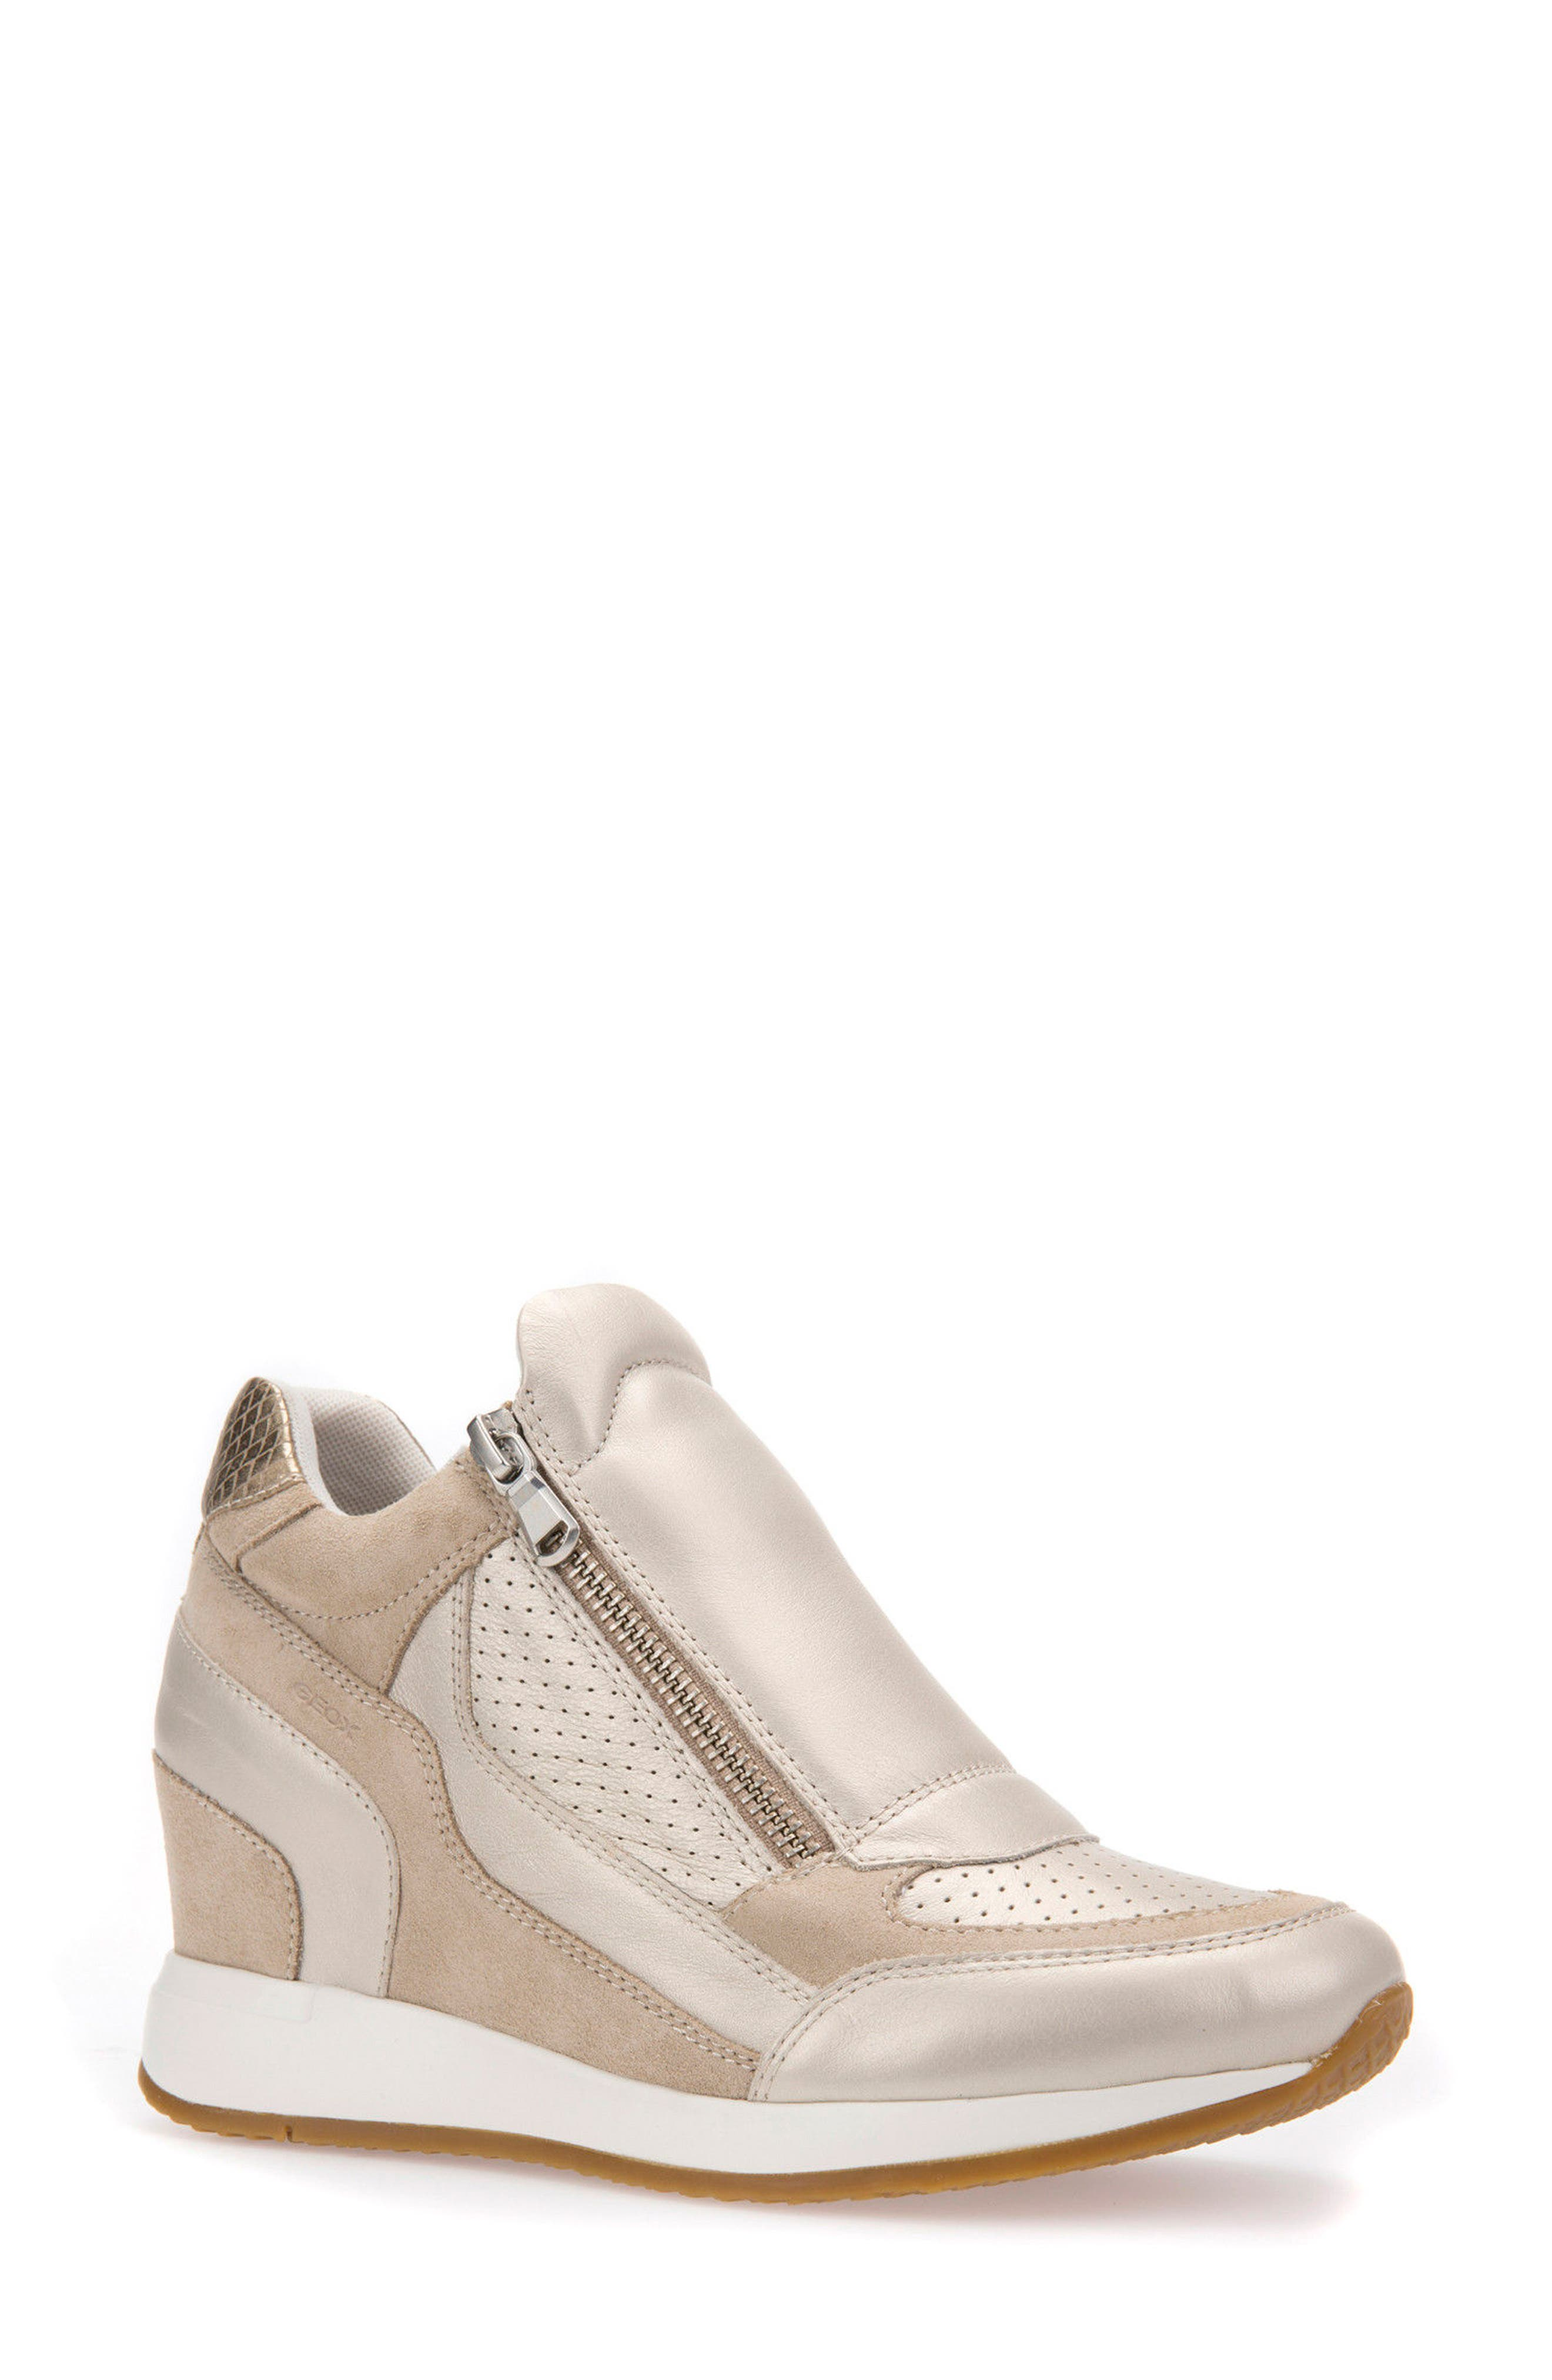 Nydame Wedge Sneaker,                             Main thumbnail 1, color,                             PLATINUM LEATHER